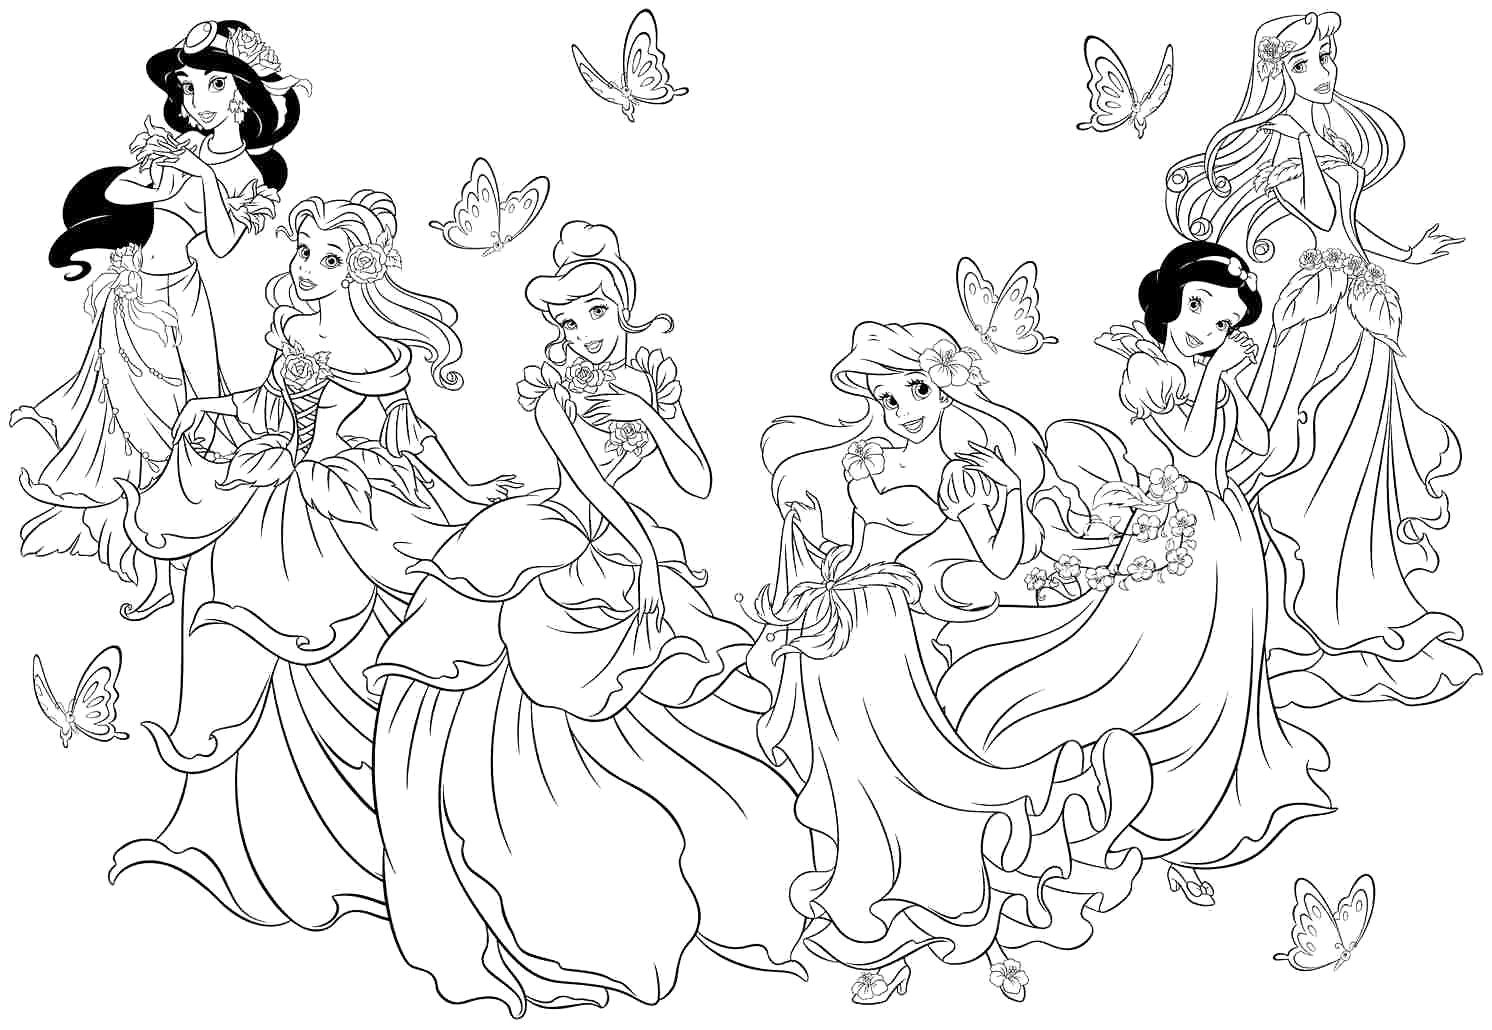 Valentine Coloring Pages Disney Disney Princess Coloring Pages Disney Coloring Pages Princess Coloring Sheets